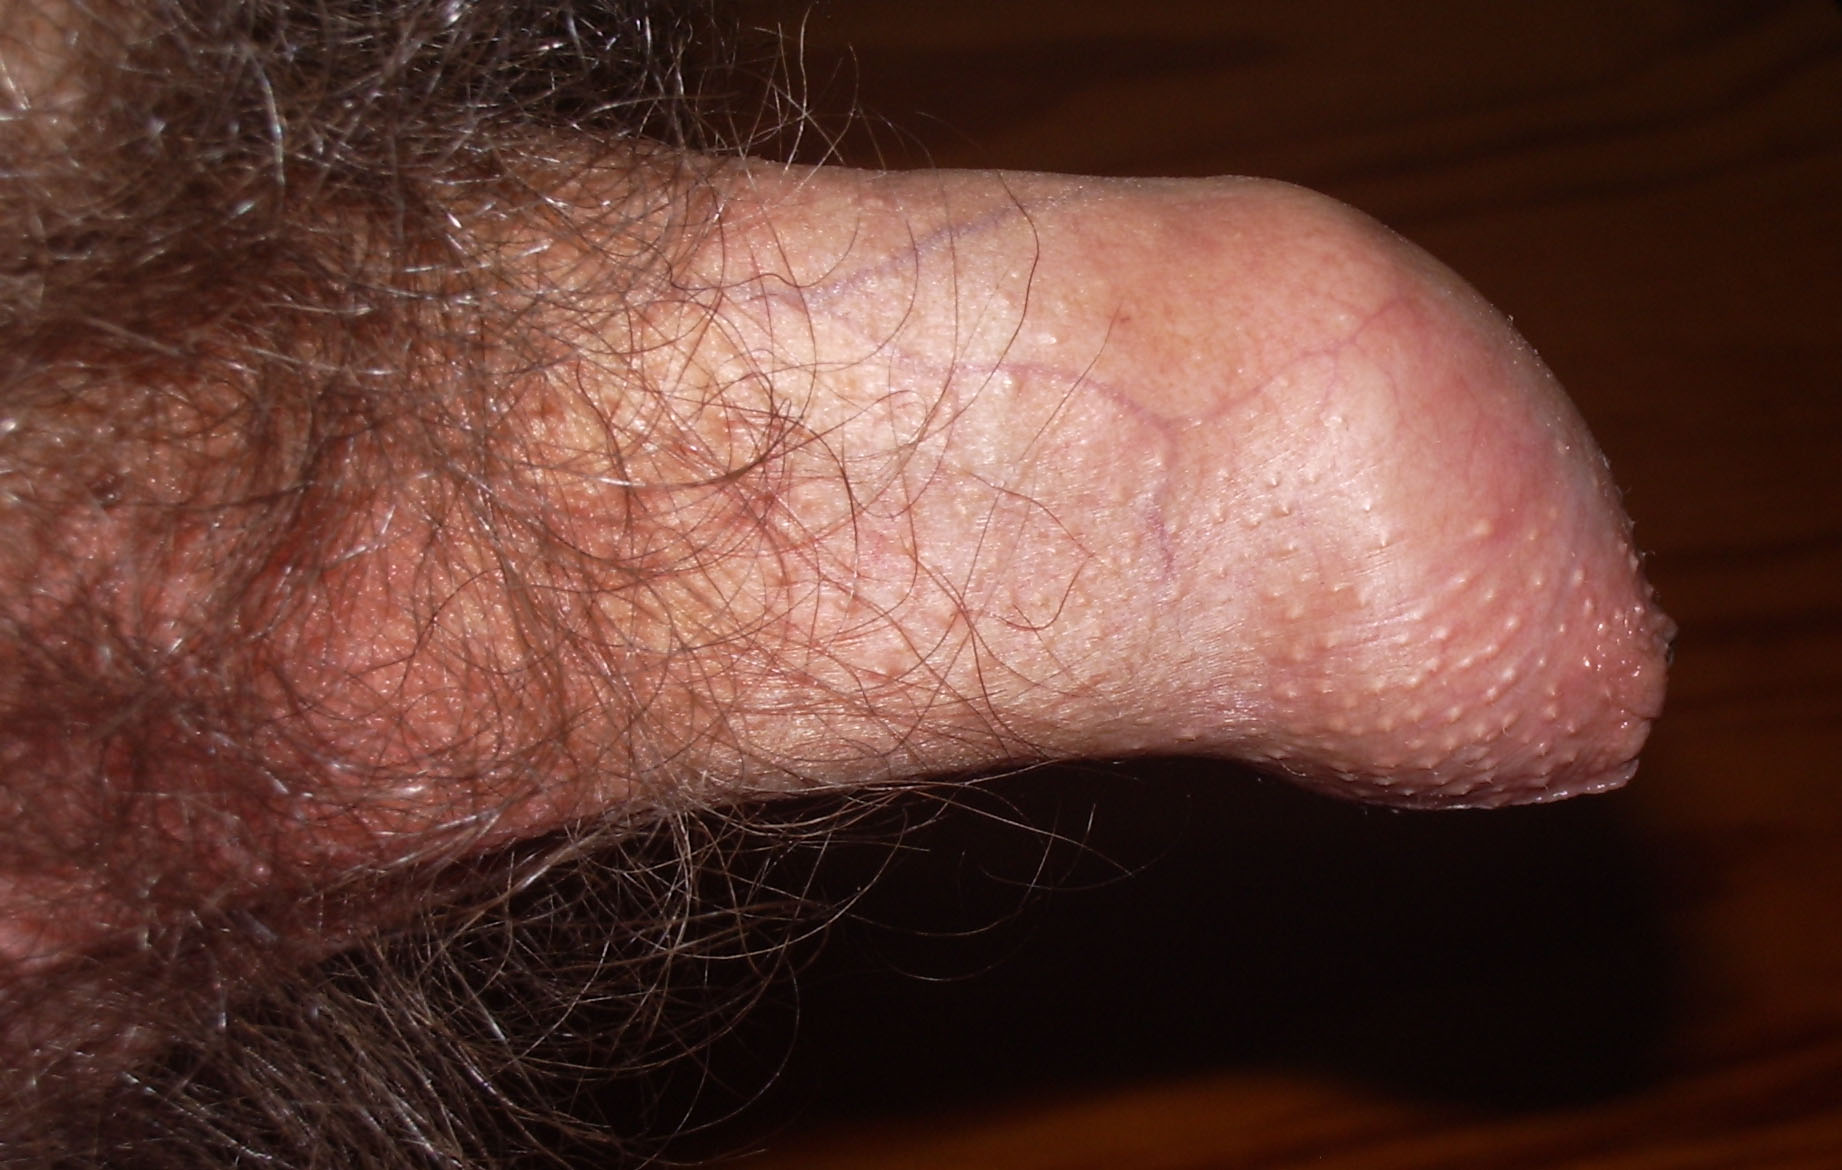 Penis infection scar tissue stretch